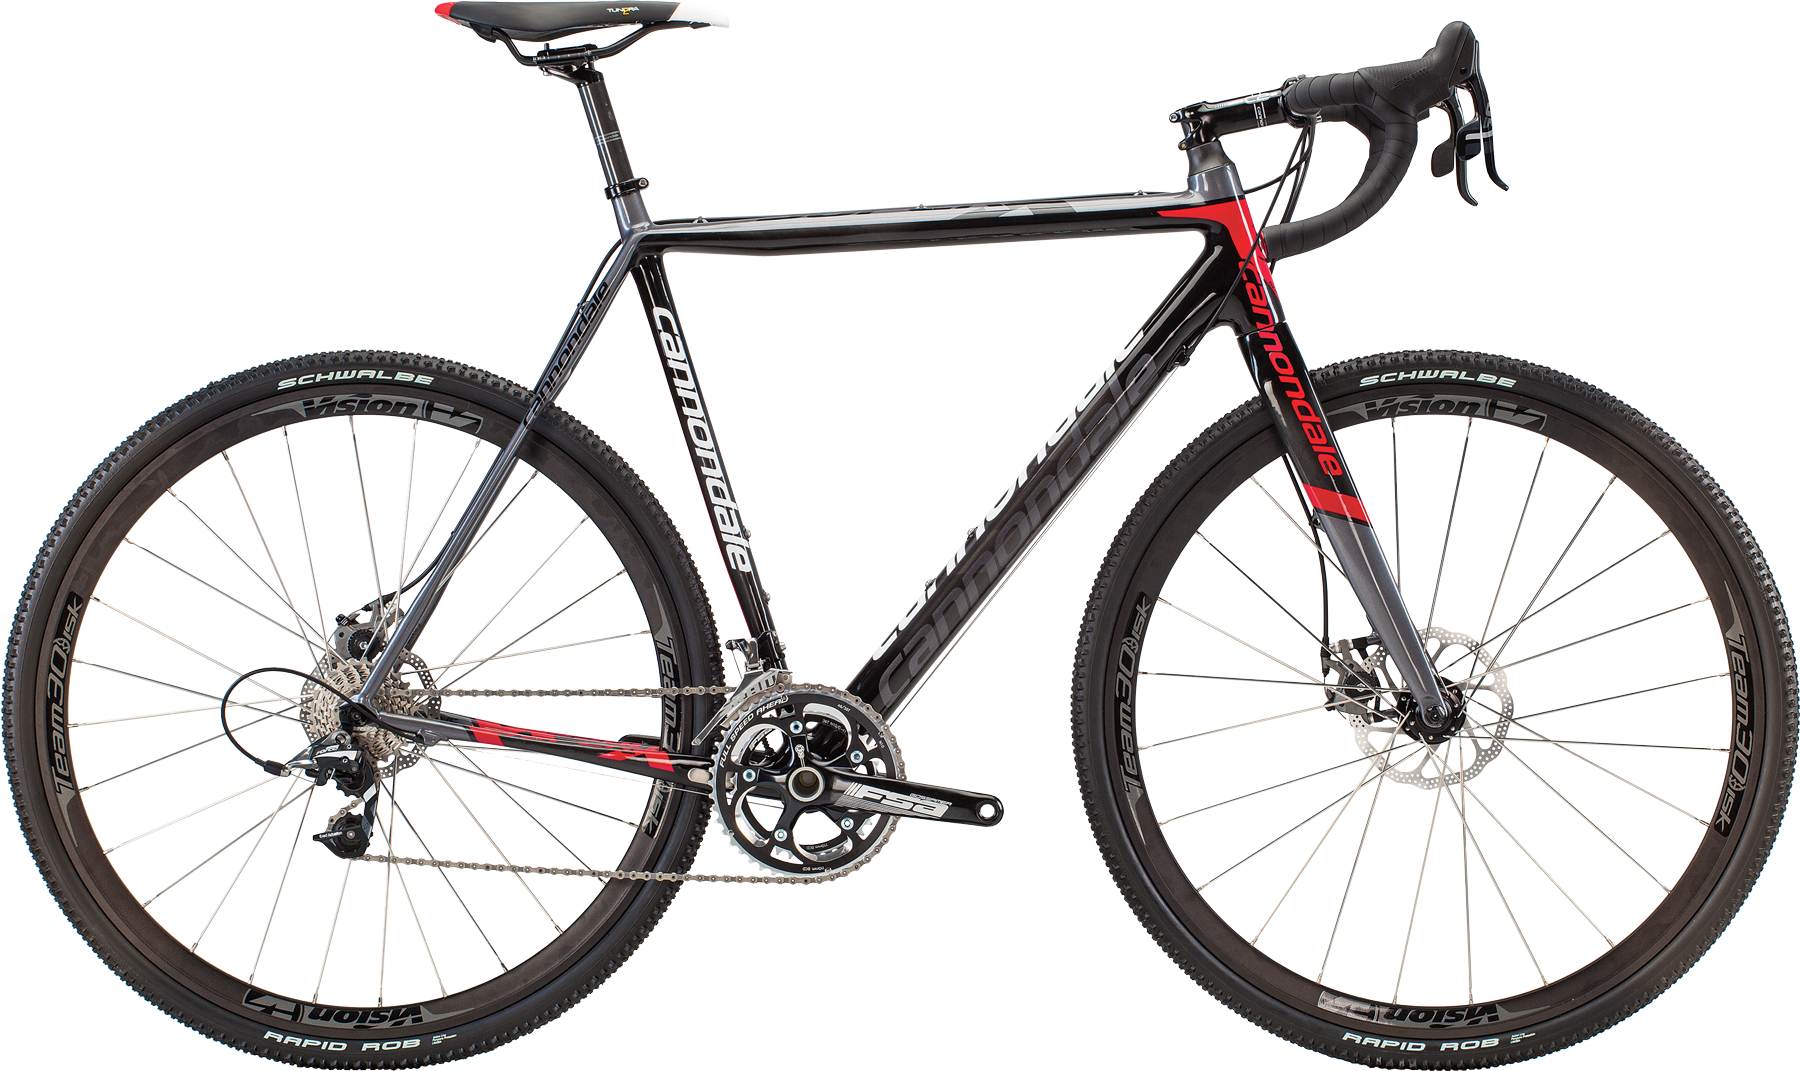 Cannondale Bikes Vs Specialized Bikes Filed under CX bikes Tagged